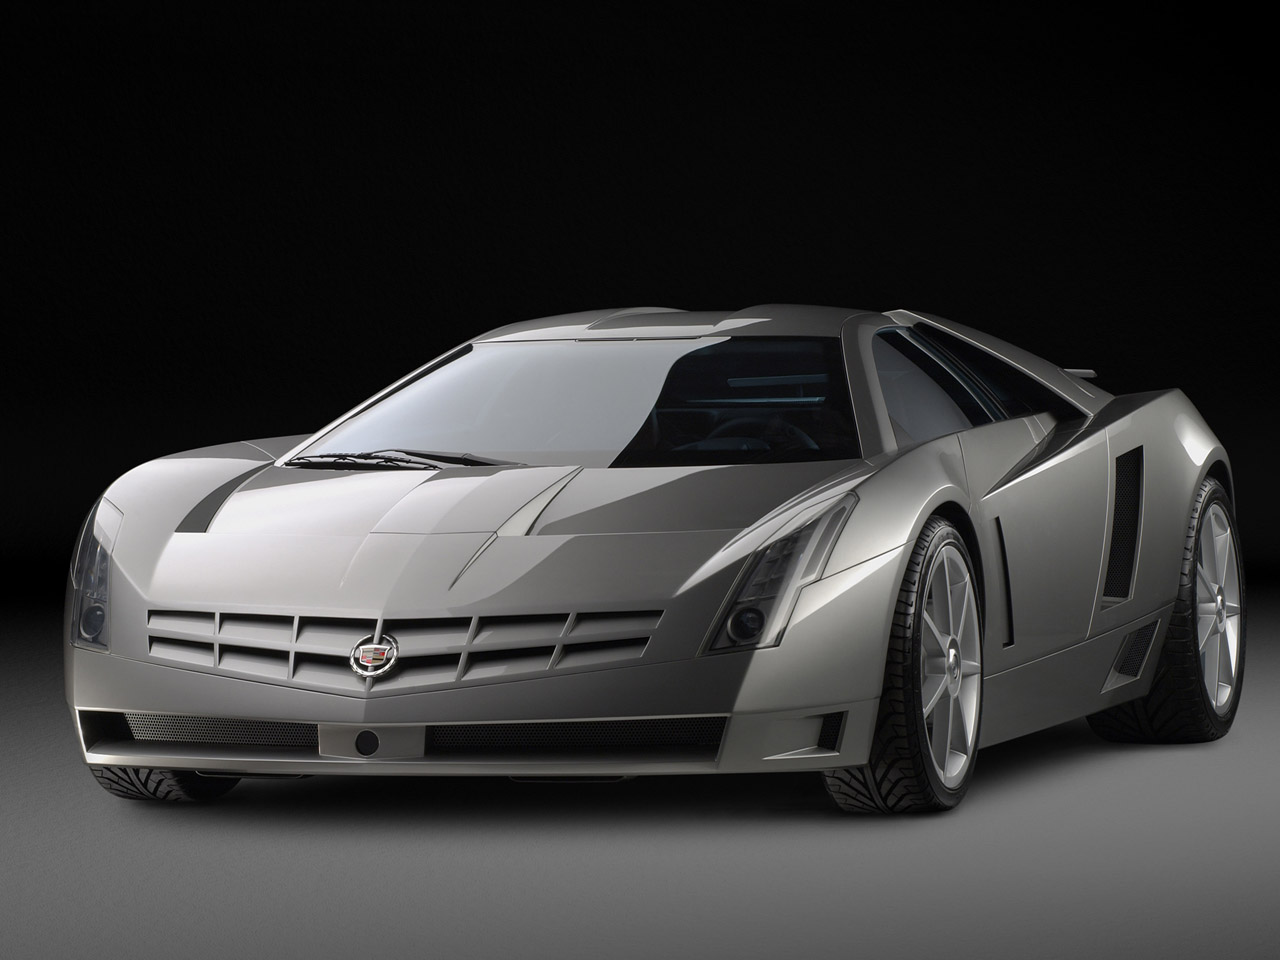 Cadillac Cien Concept Considering Two Seater Halo Sports Car Wallpapers Download